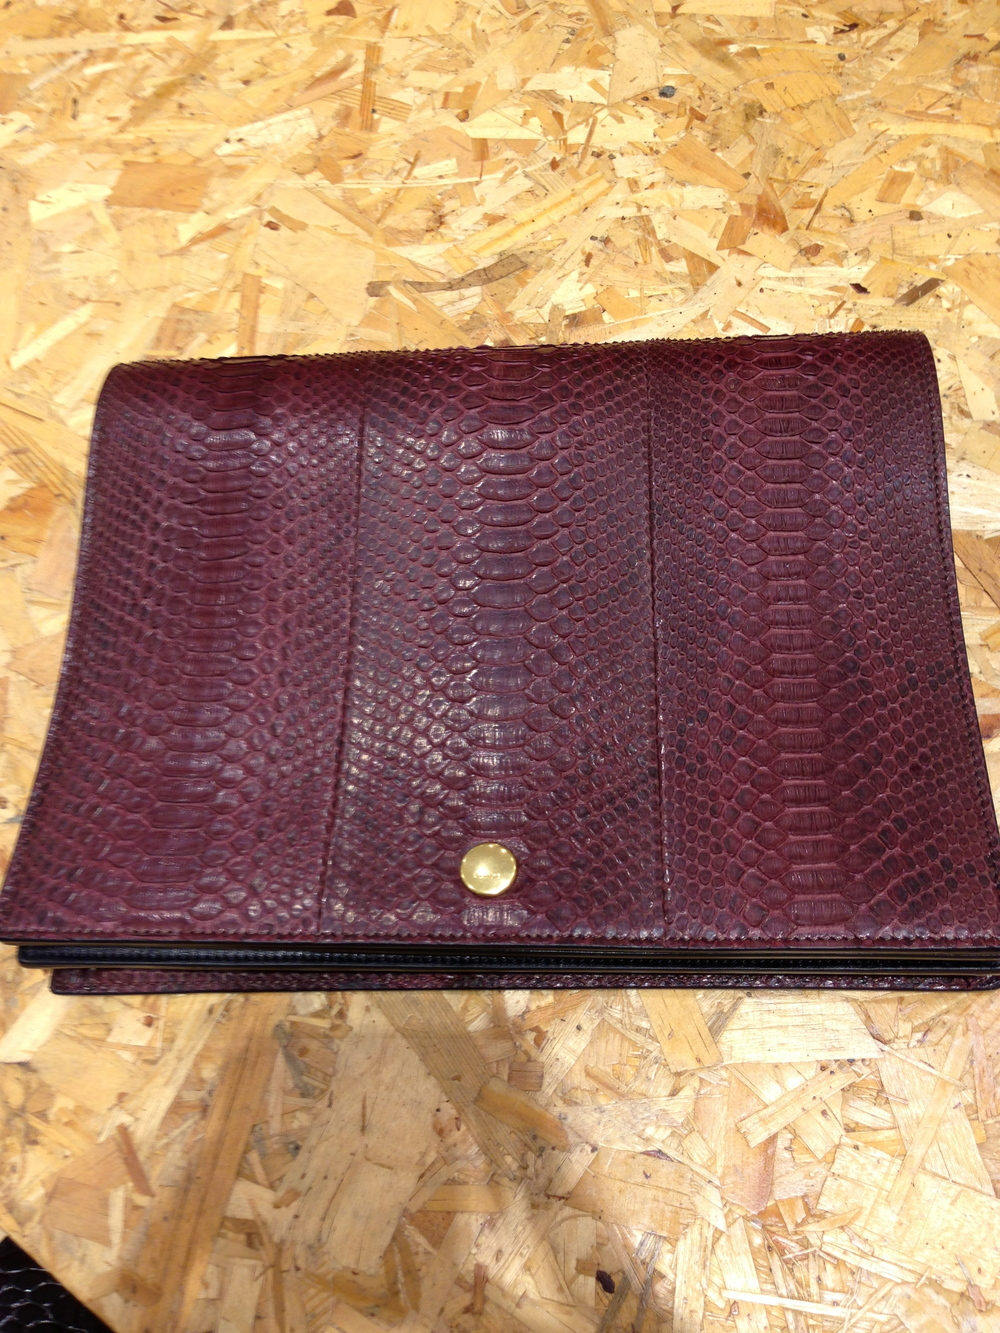 Celine Double Flap Clutch in Burgundy Python Skin